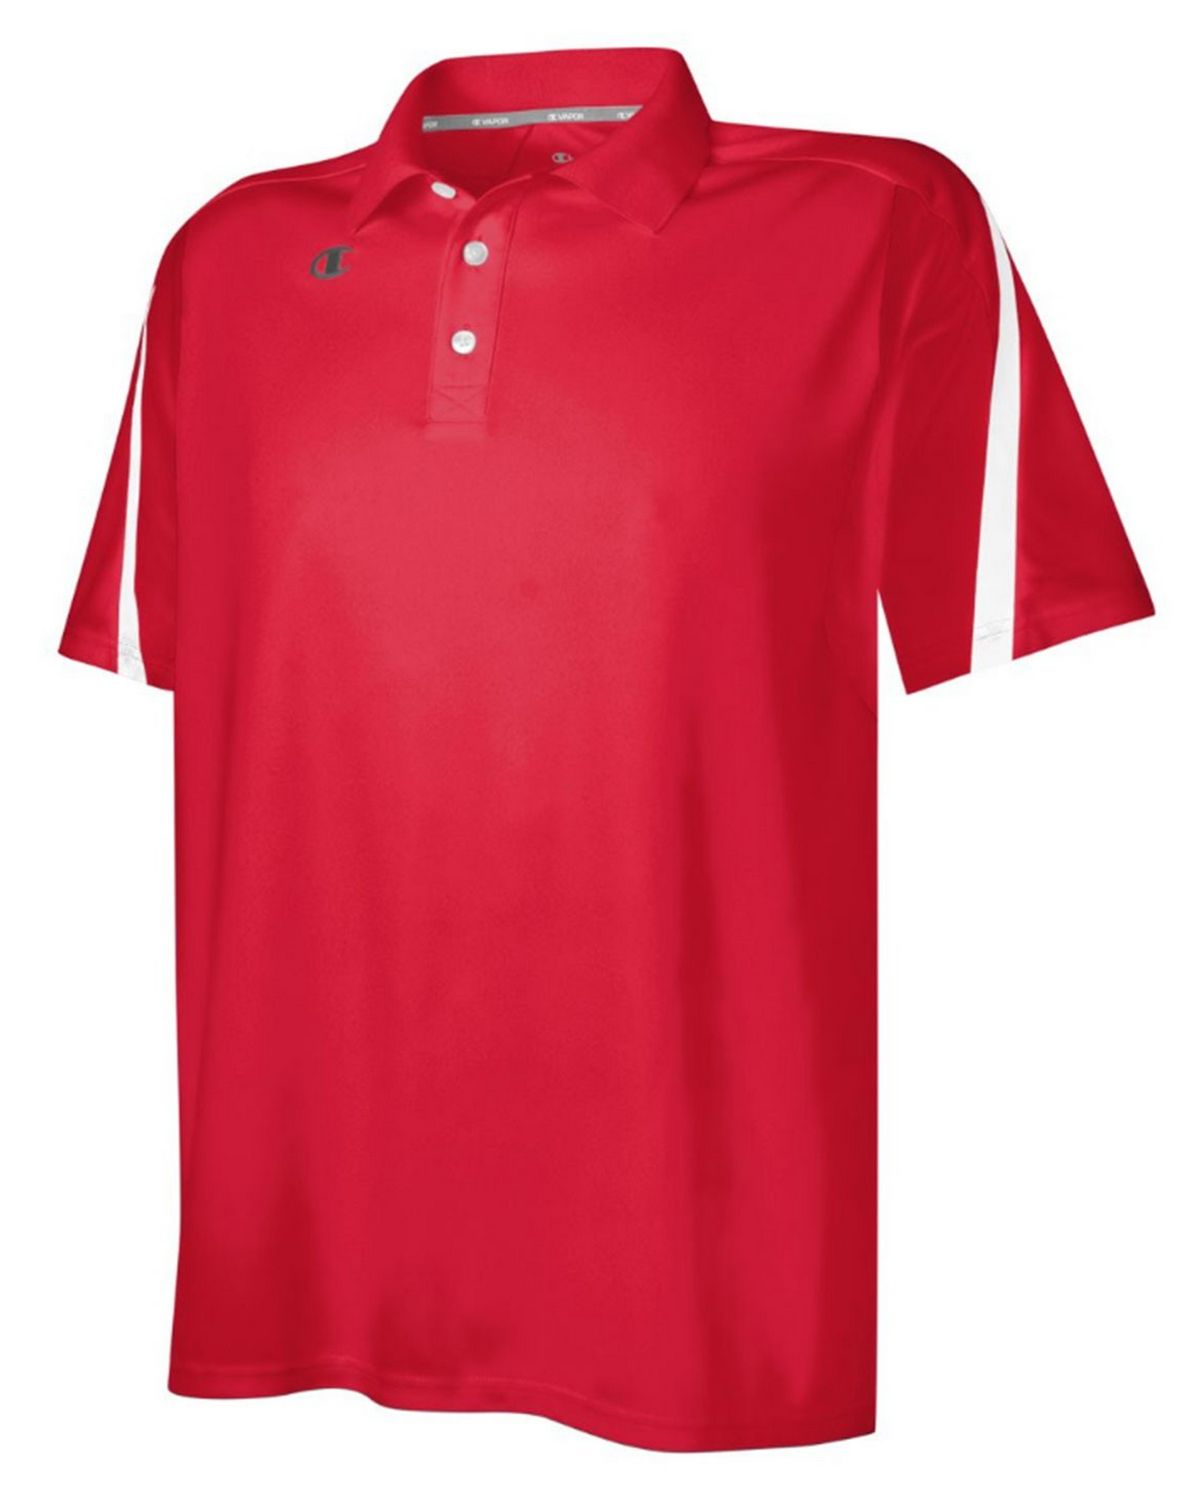 Champion H911 Mens Polo Shirt - Scarlet/White - XL H911